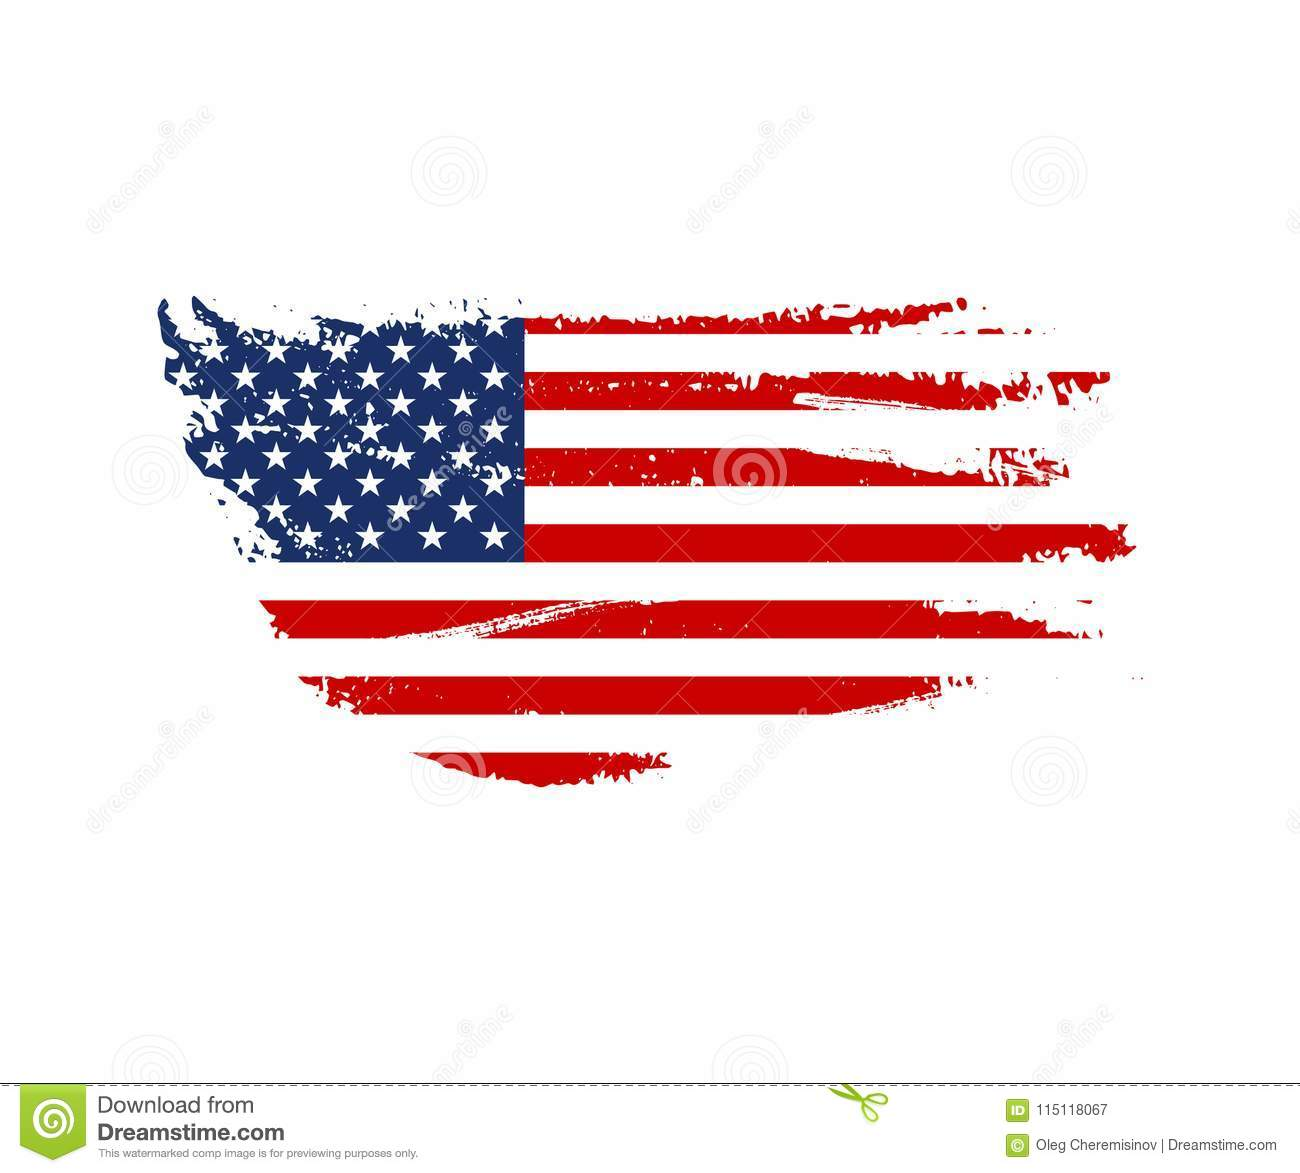 Vintage USA flag illustration. Vector American flag on grunge texture.